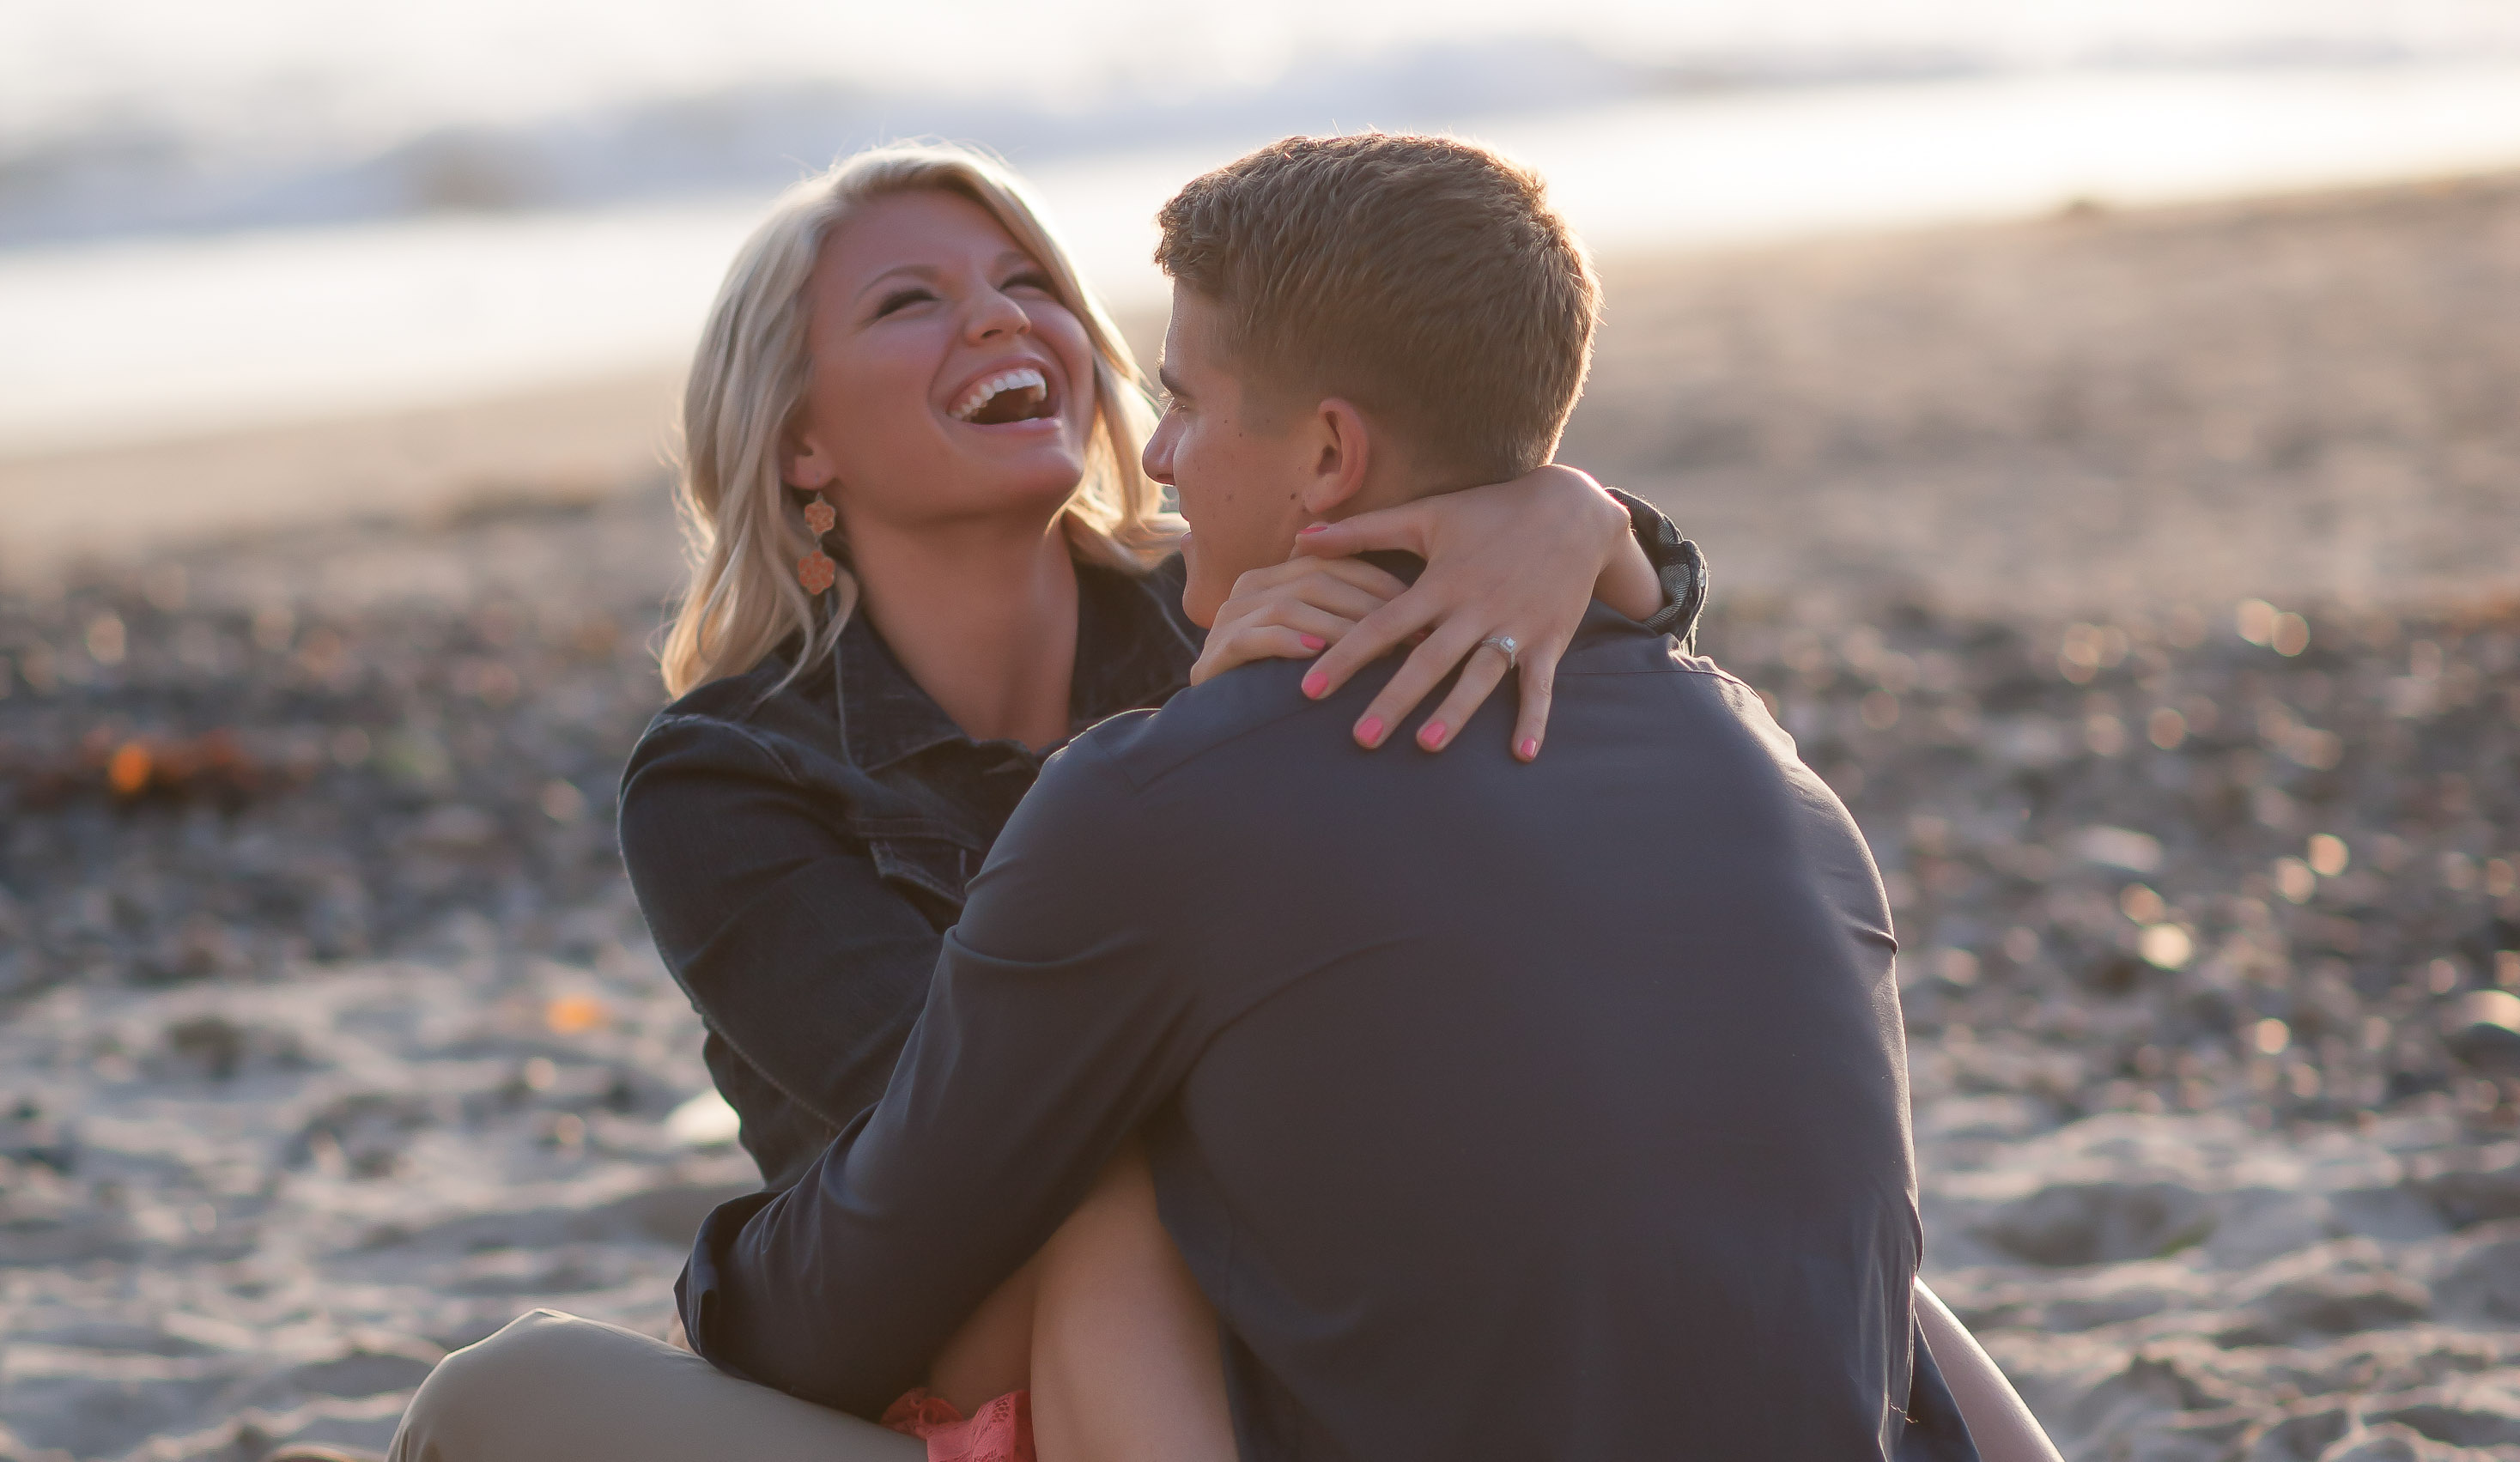 Sensual embrace during Engagement Images on San Clemente Pier Danielle and John Galloup